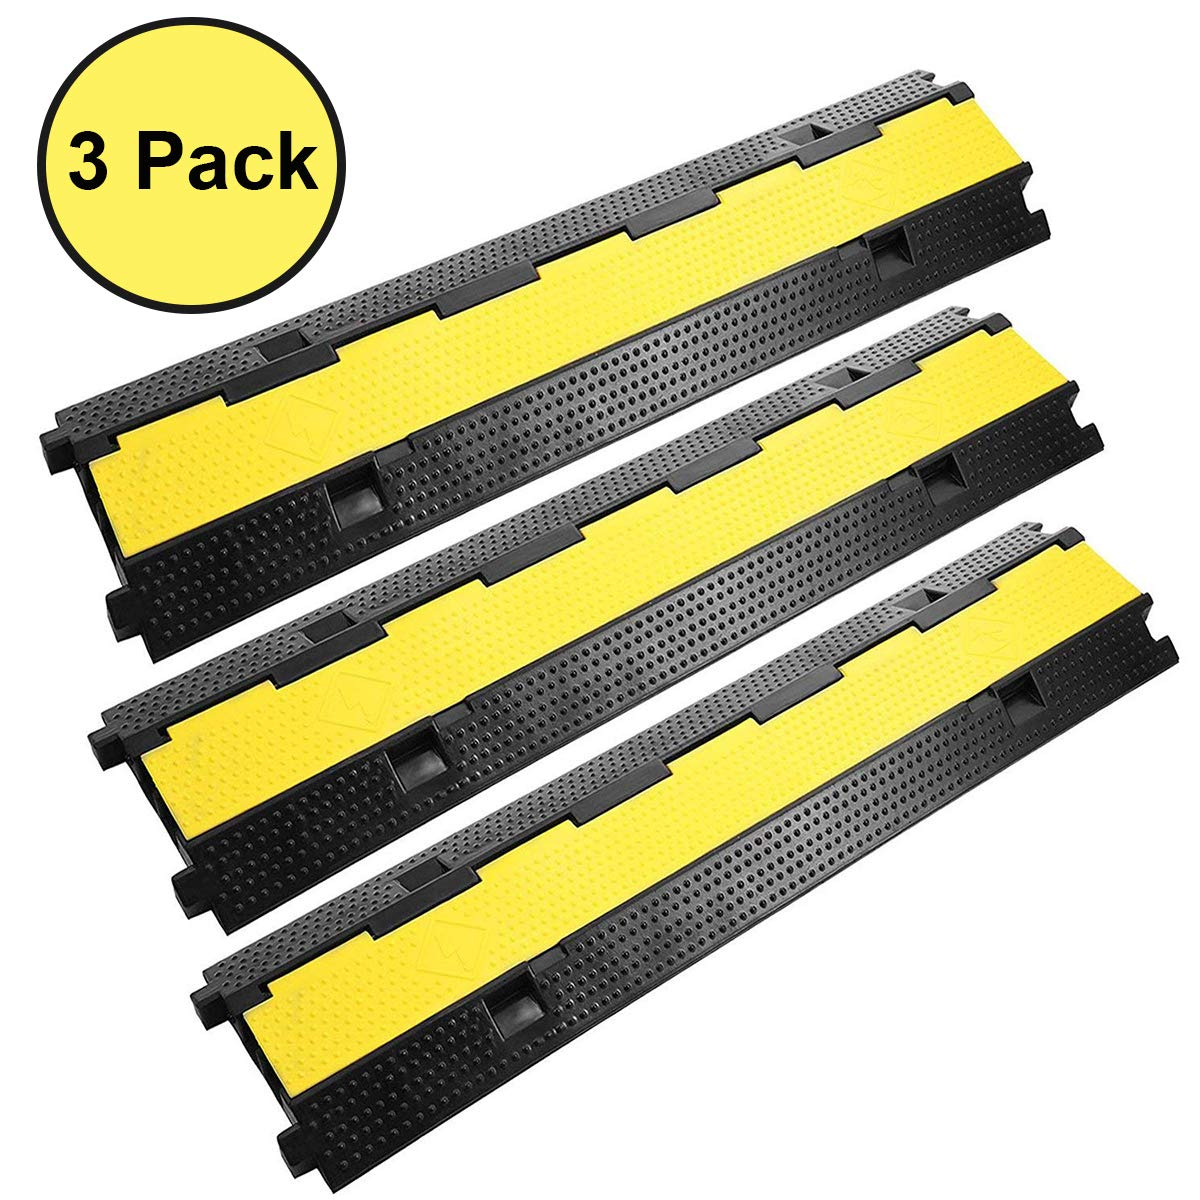 Reliancer 3 Pack Dual Channel Rubber Cable Protector Ramp 2 Channel Traffic Speed Bump 11000lbs Capacity Heavy Duty Hose Cable Track Protector Protective Cover Wires Concealer w/Flip-open Top Cover by Reliancer (Image #1)